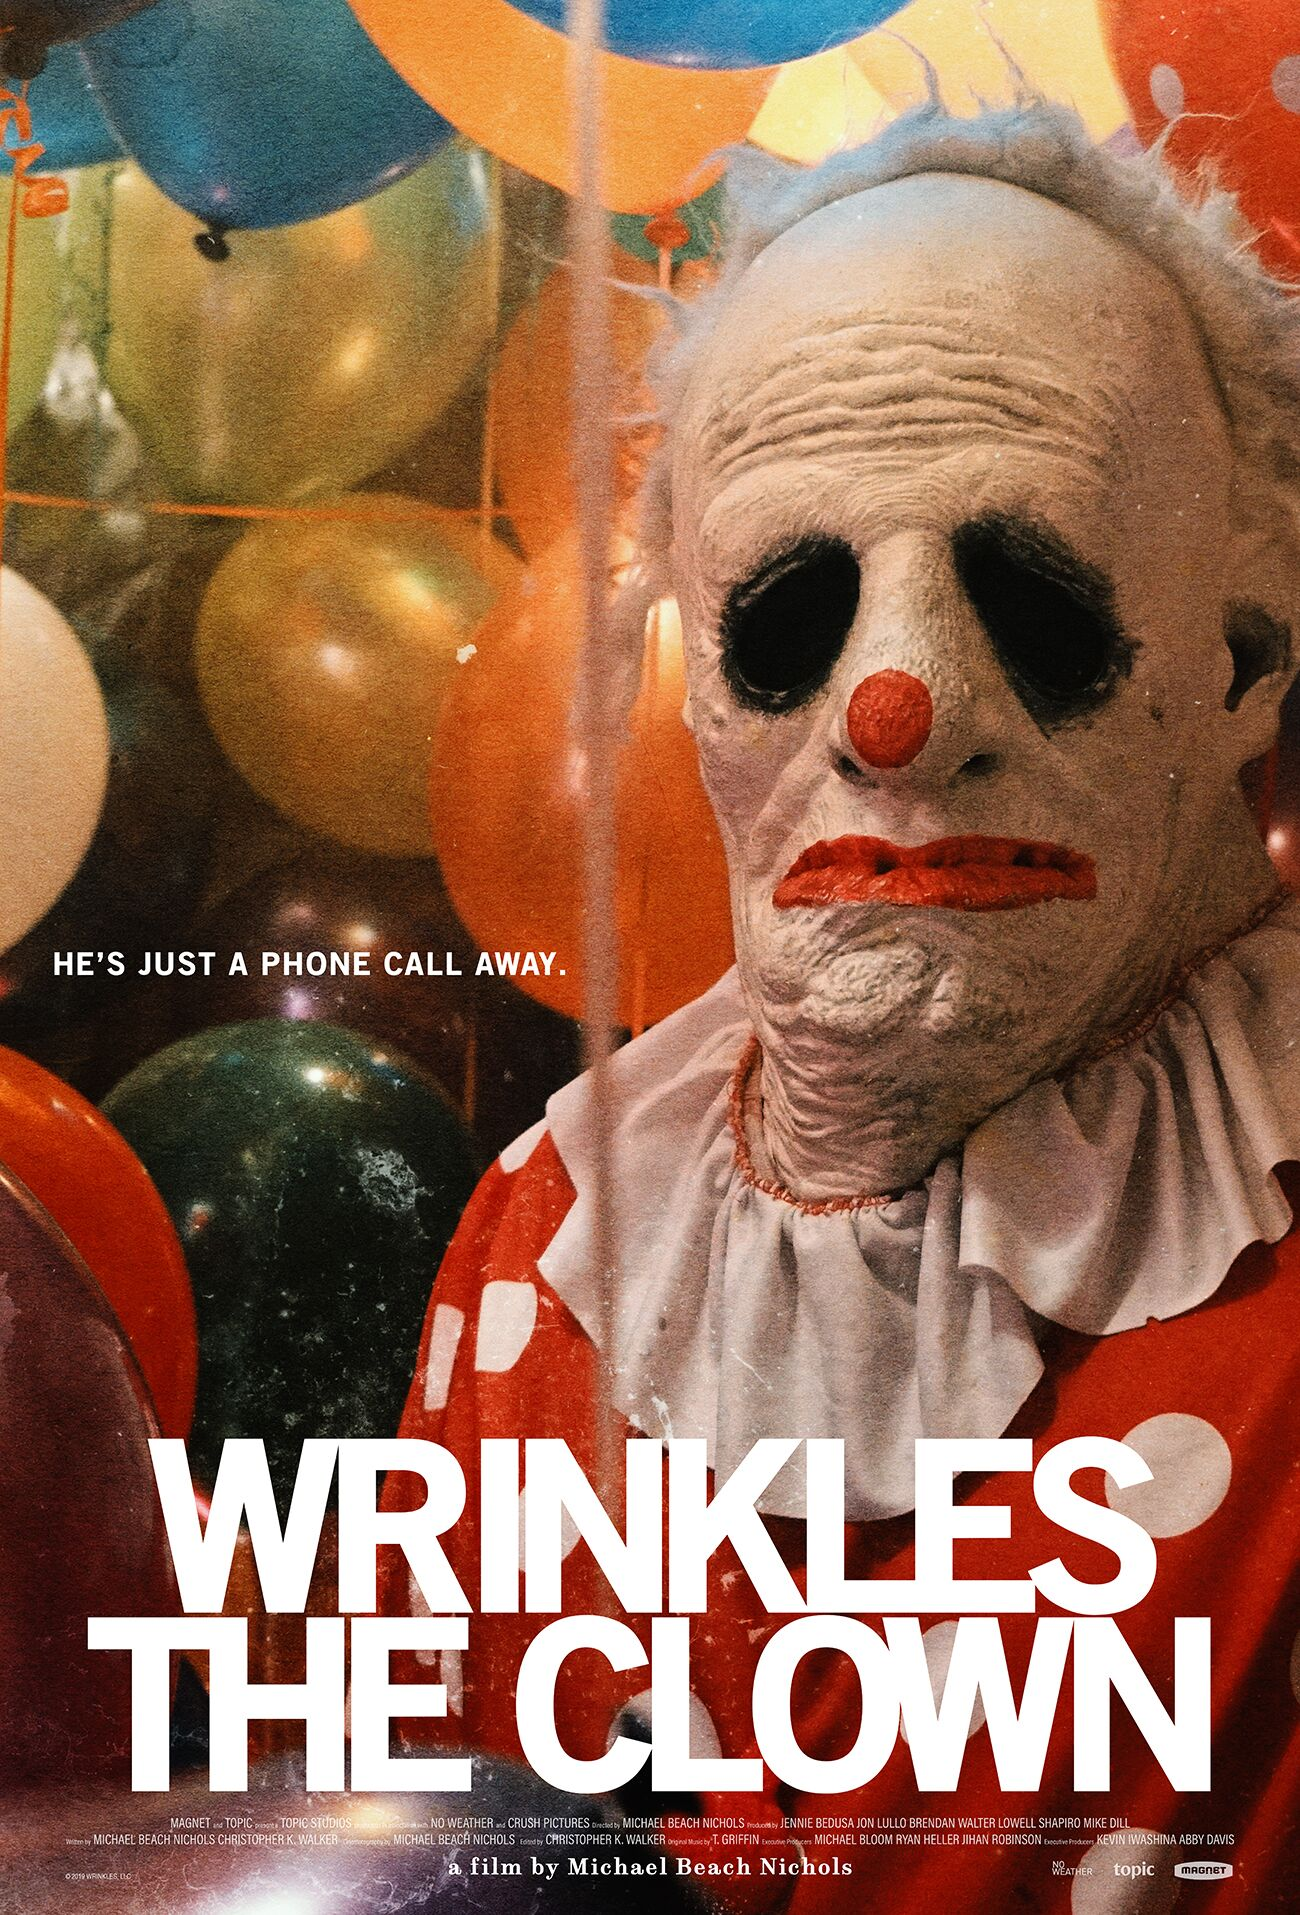 wrinkles the clown, a man in a creepy, melted clown mask